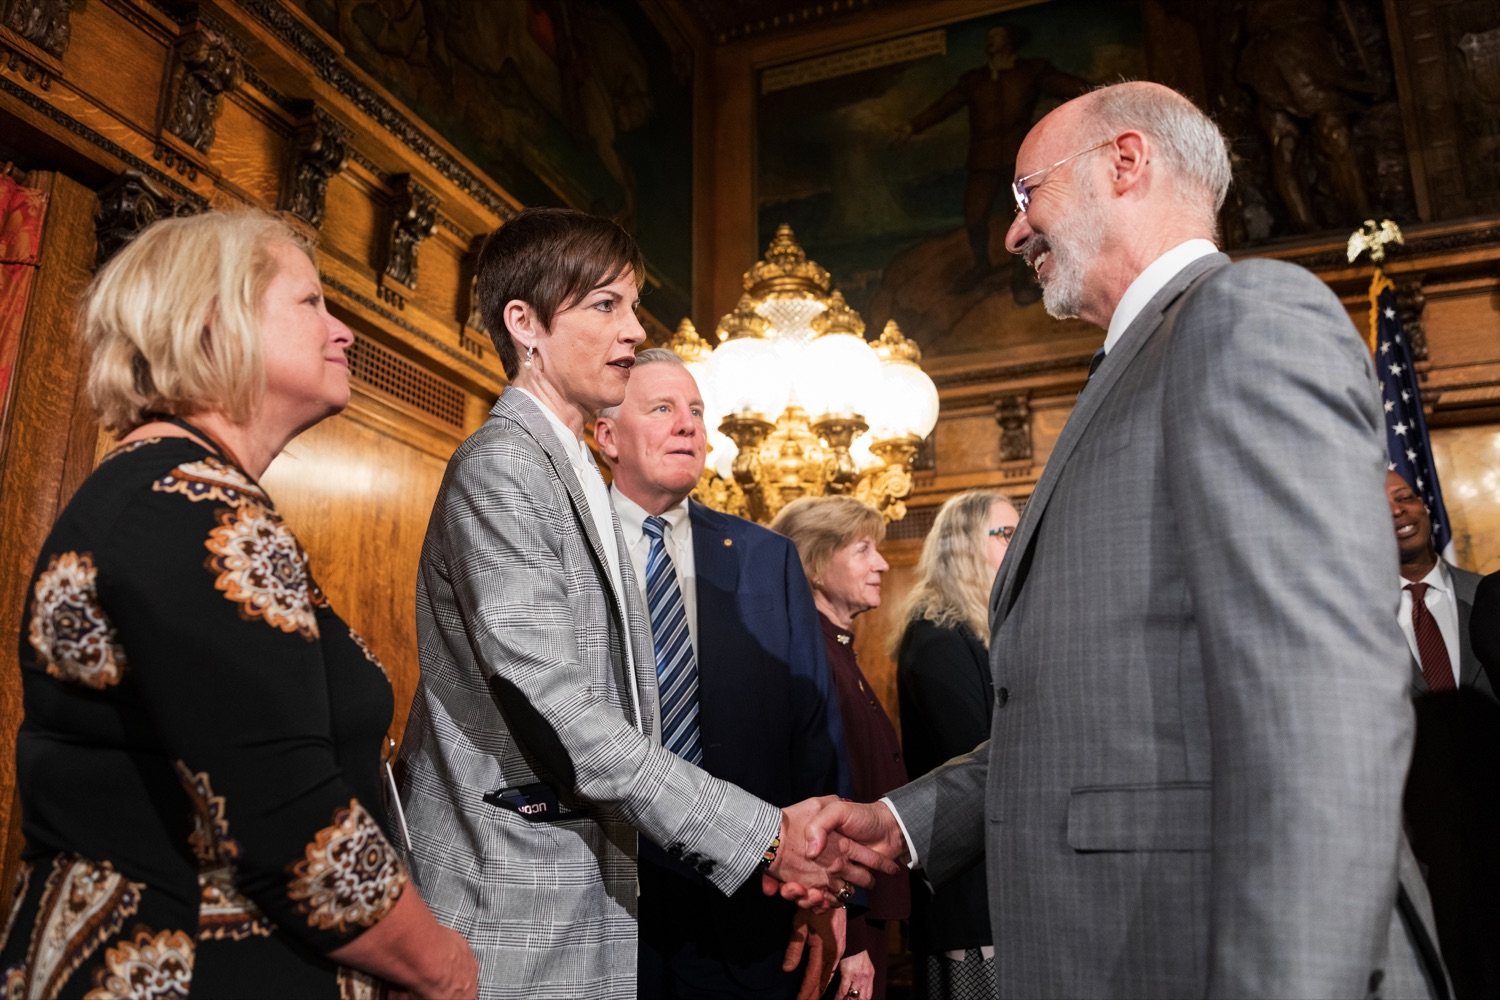 "<a href=""https://filesource.wostreaming.net/commonwealthofpa/photo/17753_GOV_Lead_Contaminants_NK_006.JPG"" target=""_blank"">⇣ Download Photo<br></a>Pennsylvania Governor Tom Wolf shakes hands with Melissa McTiernan, superintendent of the Scranton School District, inside the Governor's Reception Room at the State Capitol building in Harrisburg on Wednesday, January 29, 2020."